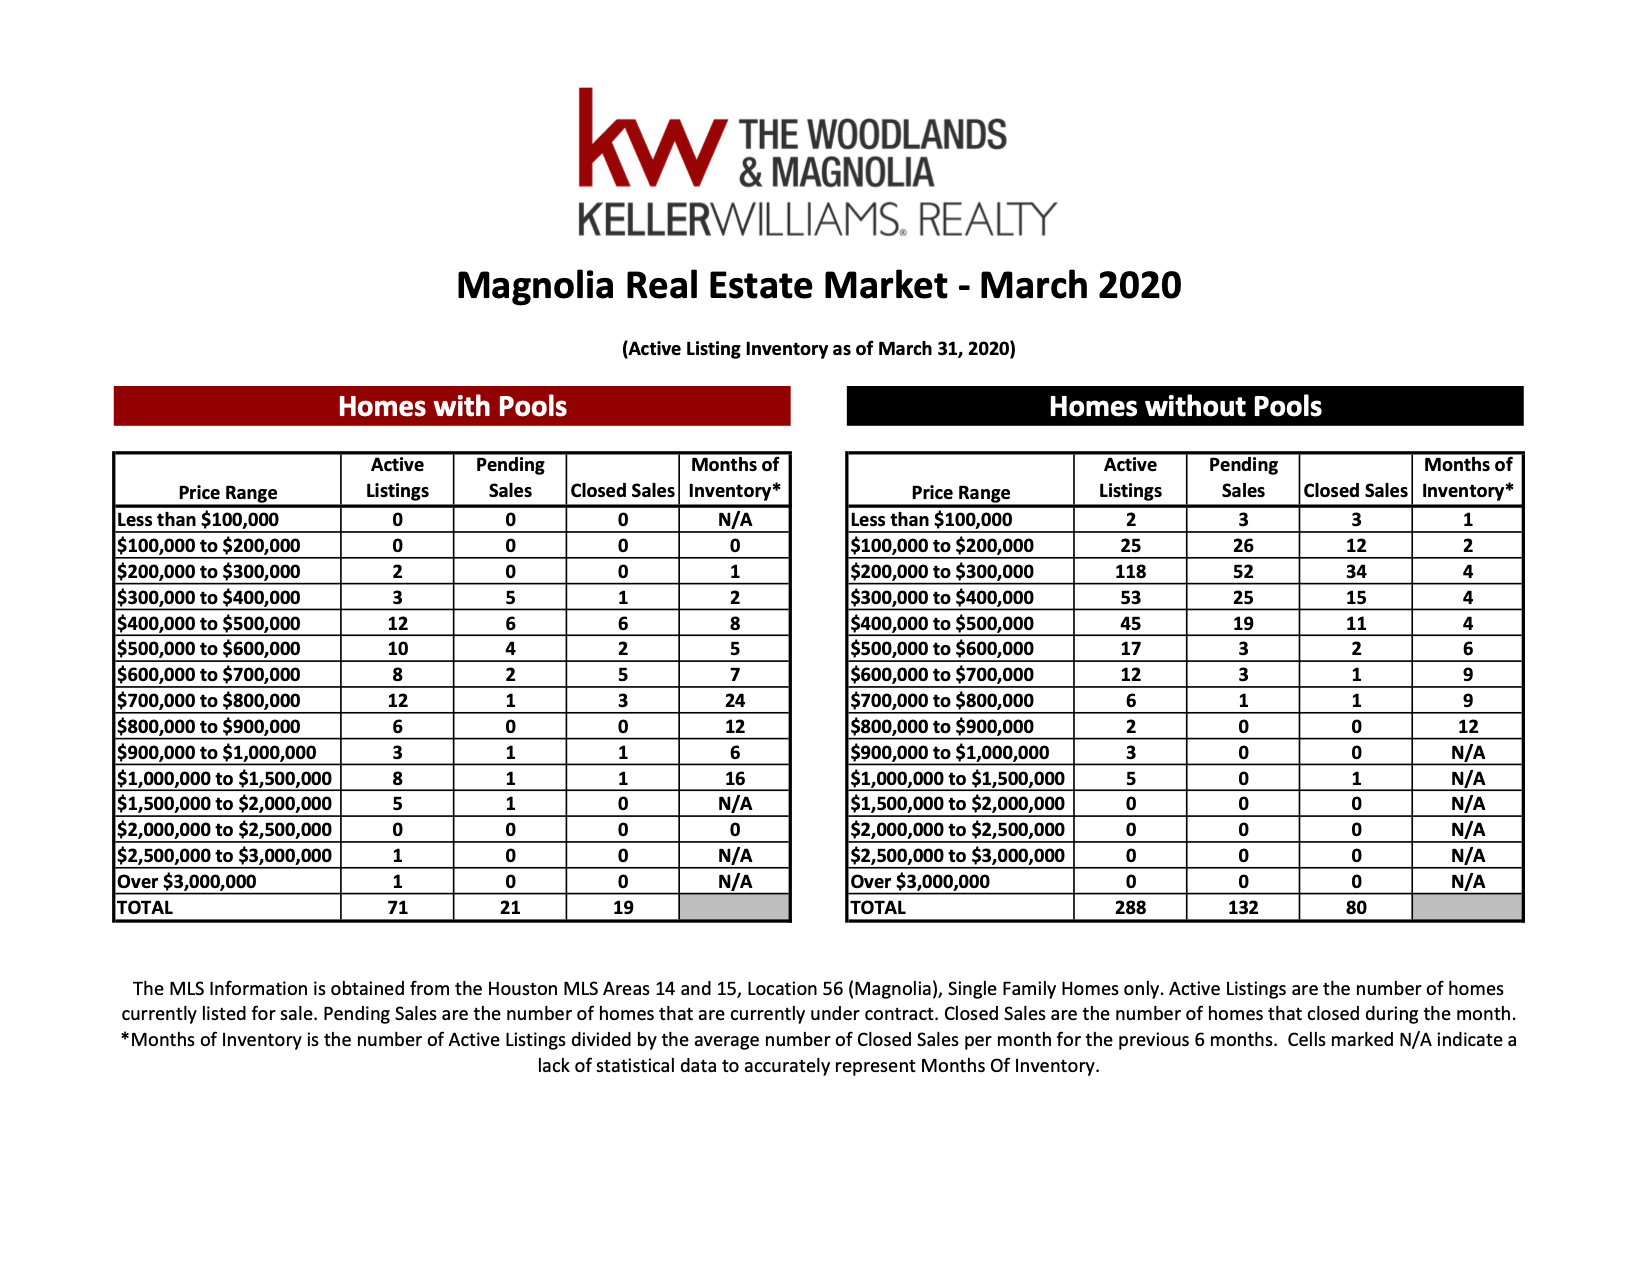 , March 2020 MarketWatch Report – Magnolia, KW Woodlands, KW Woodlands